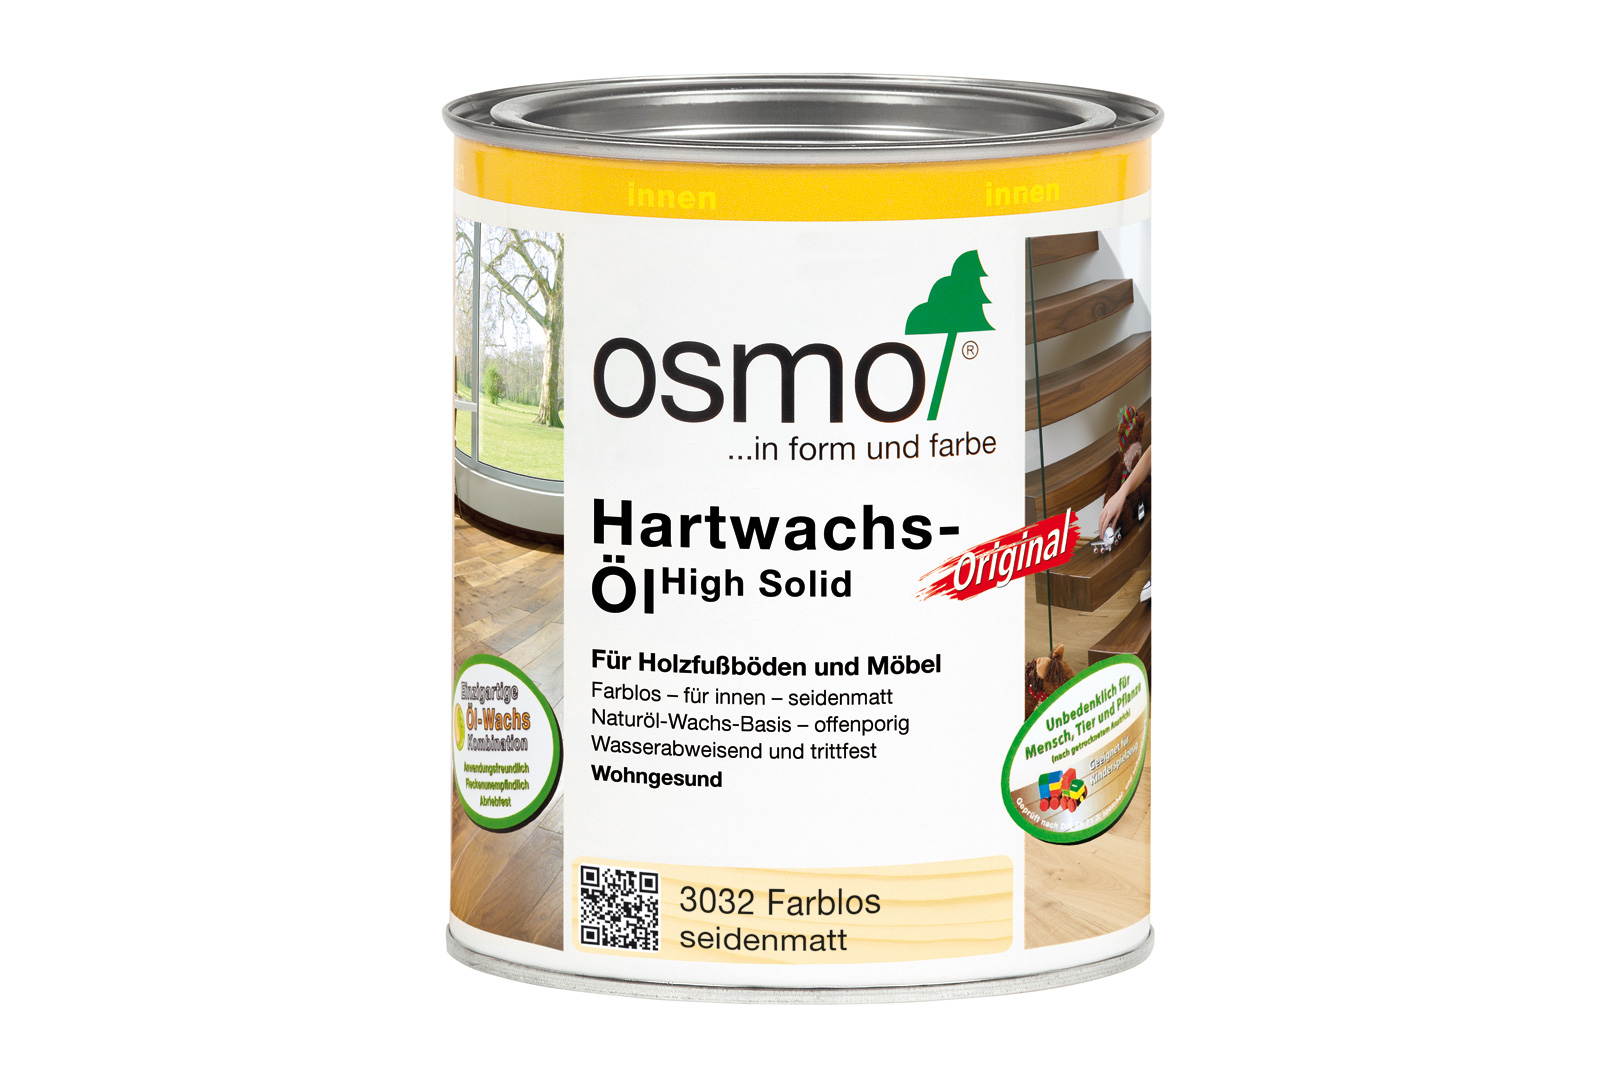 osmo hartwachs l original 3032 bei bauking direkt. Black Bedroom Furniture Sets. Home Design Ideas